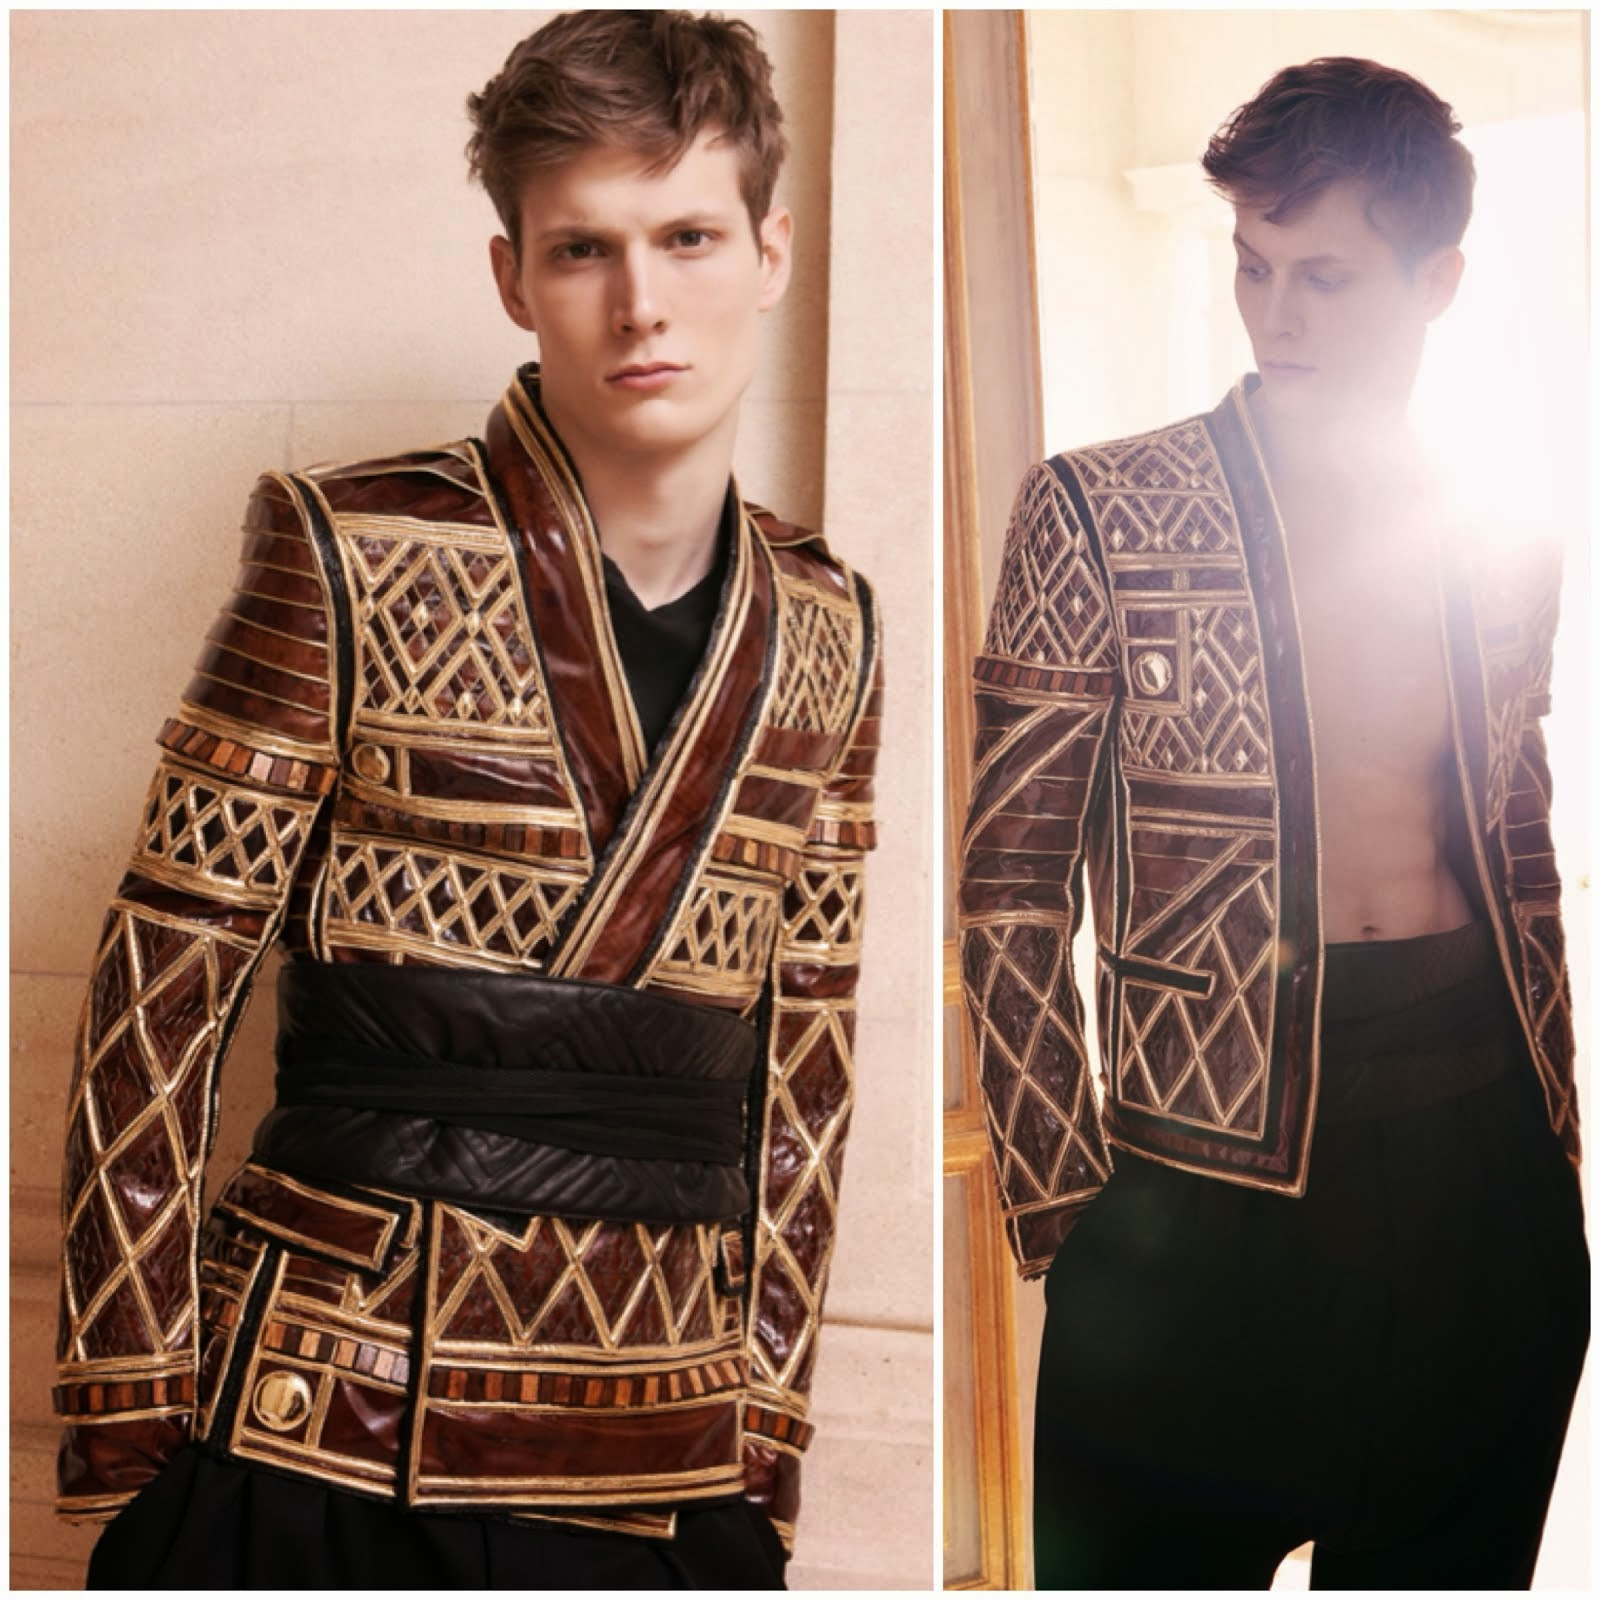 Balmain Fall Winter 2013 Leather and Gold Trophy Jacket, 1000 hours £16,000 exclusive to Harrods